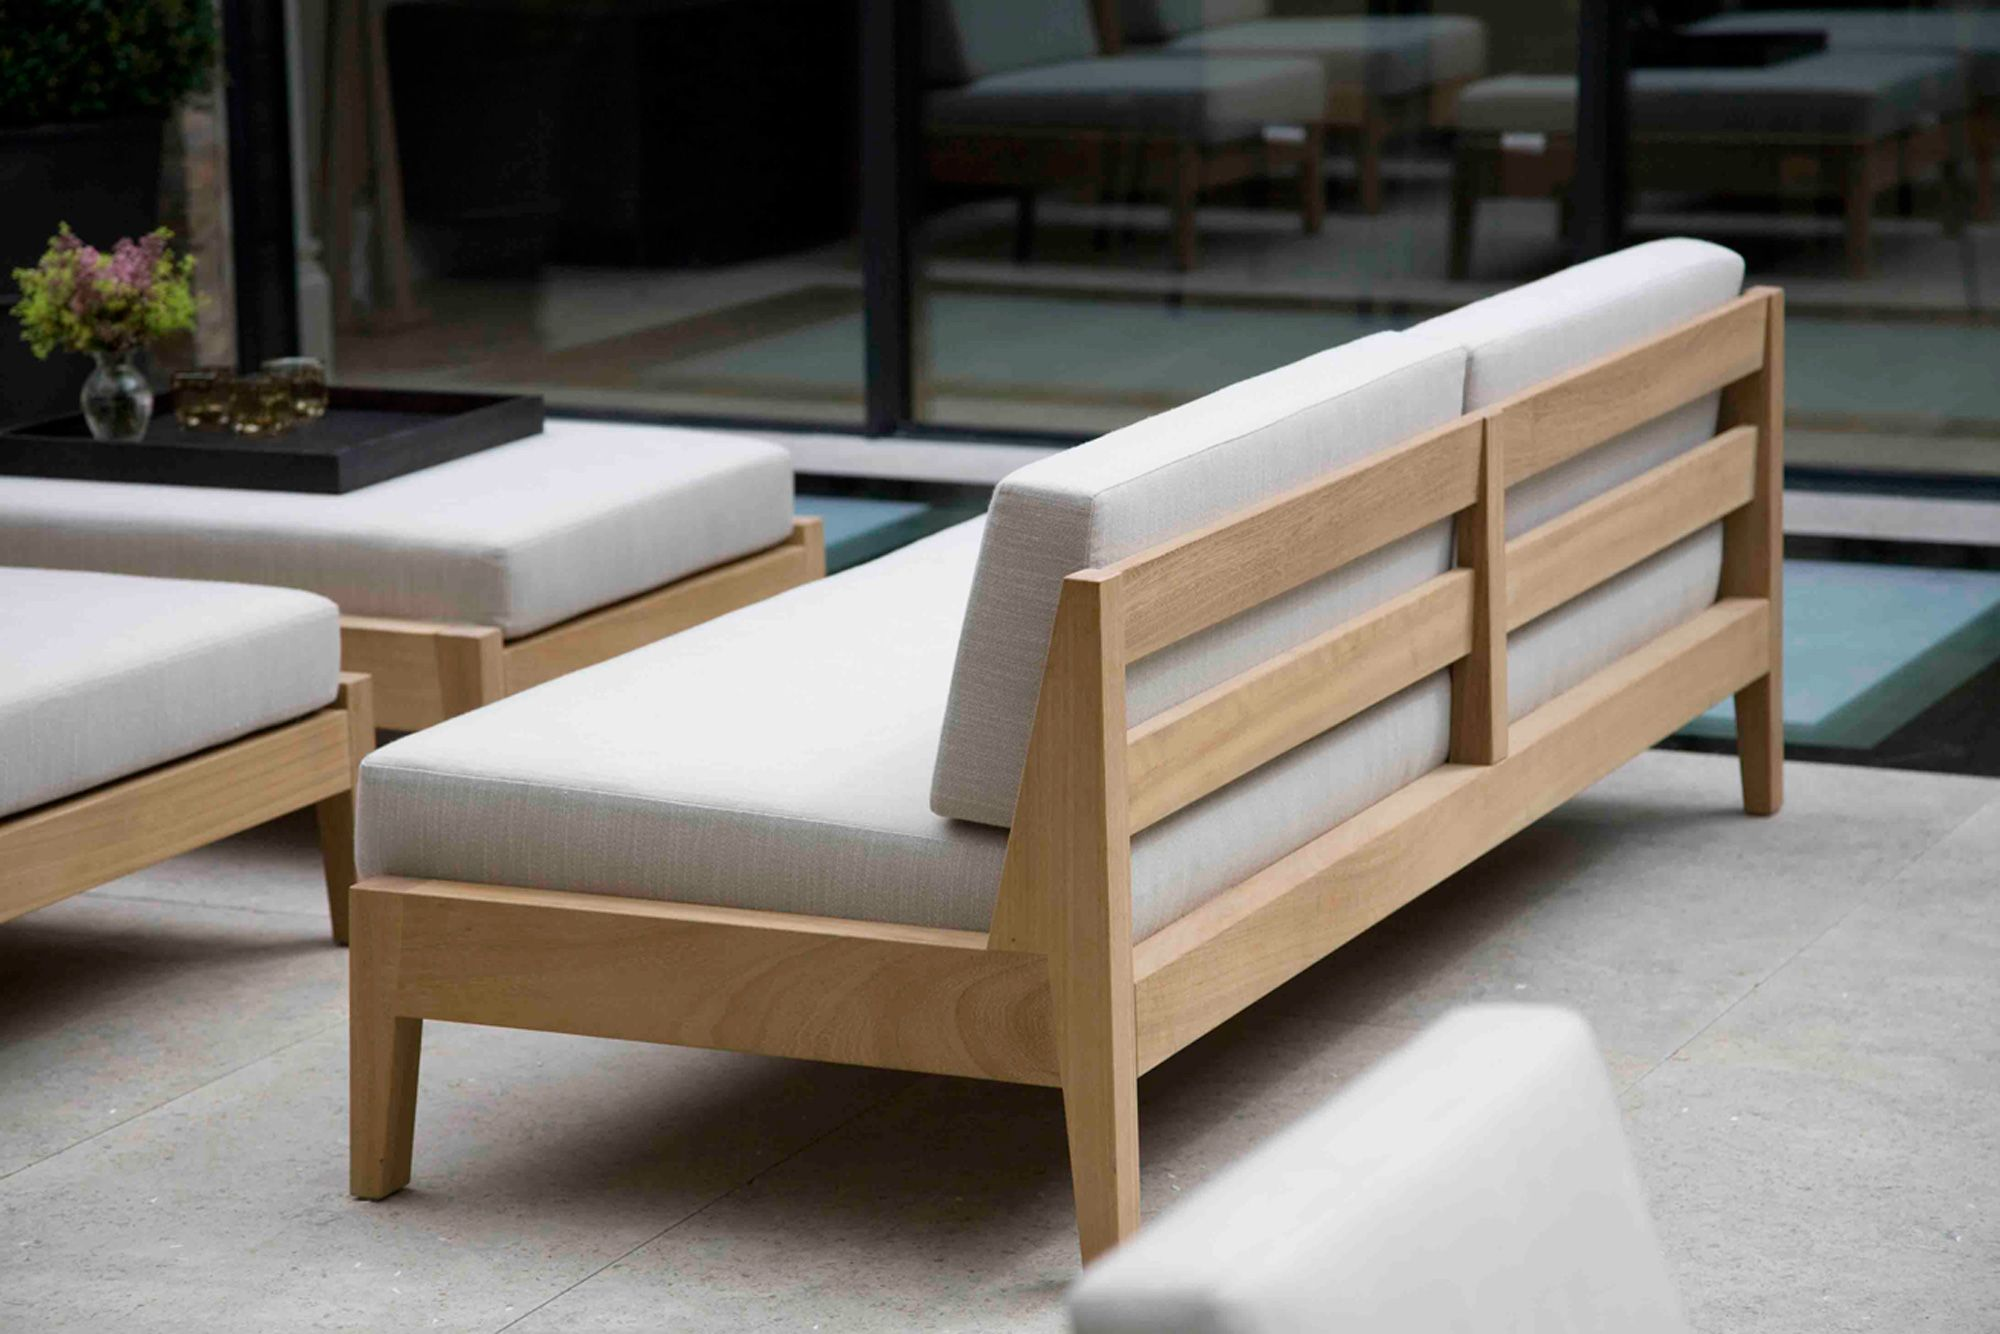 Luciano giubbilei smith collection more outdoor for Sillones de terraza